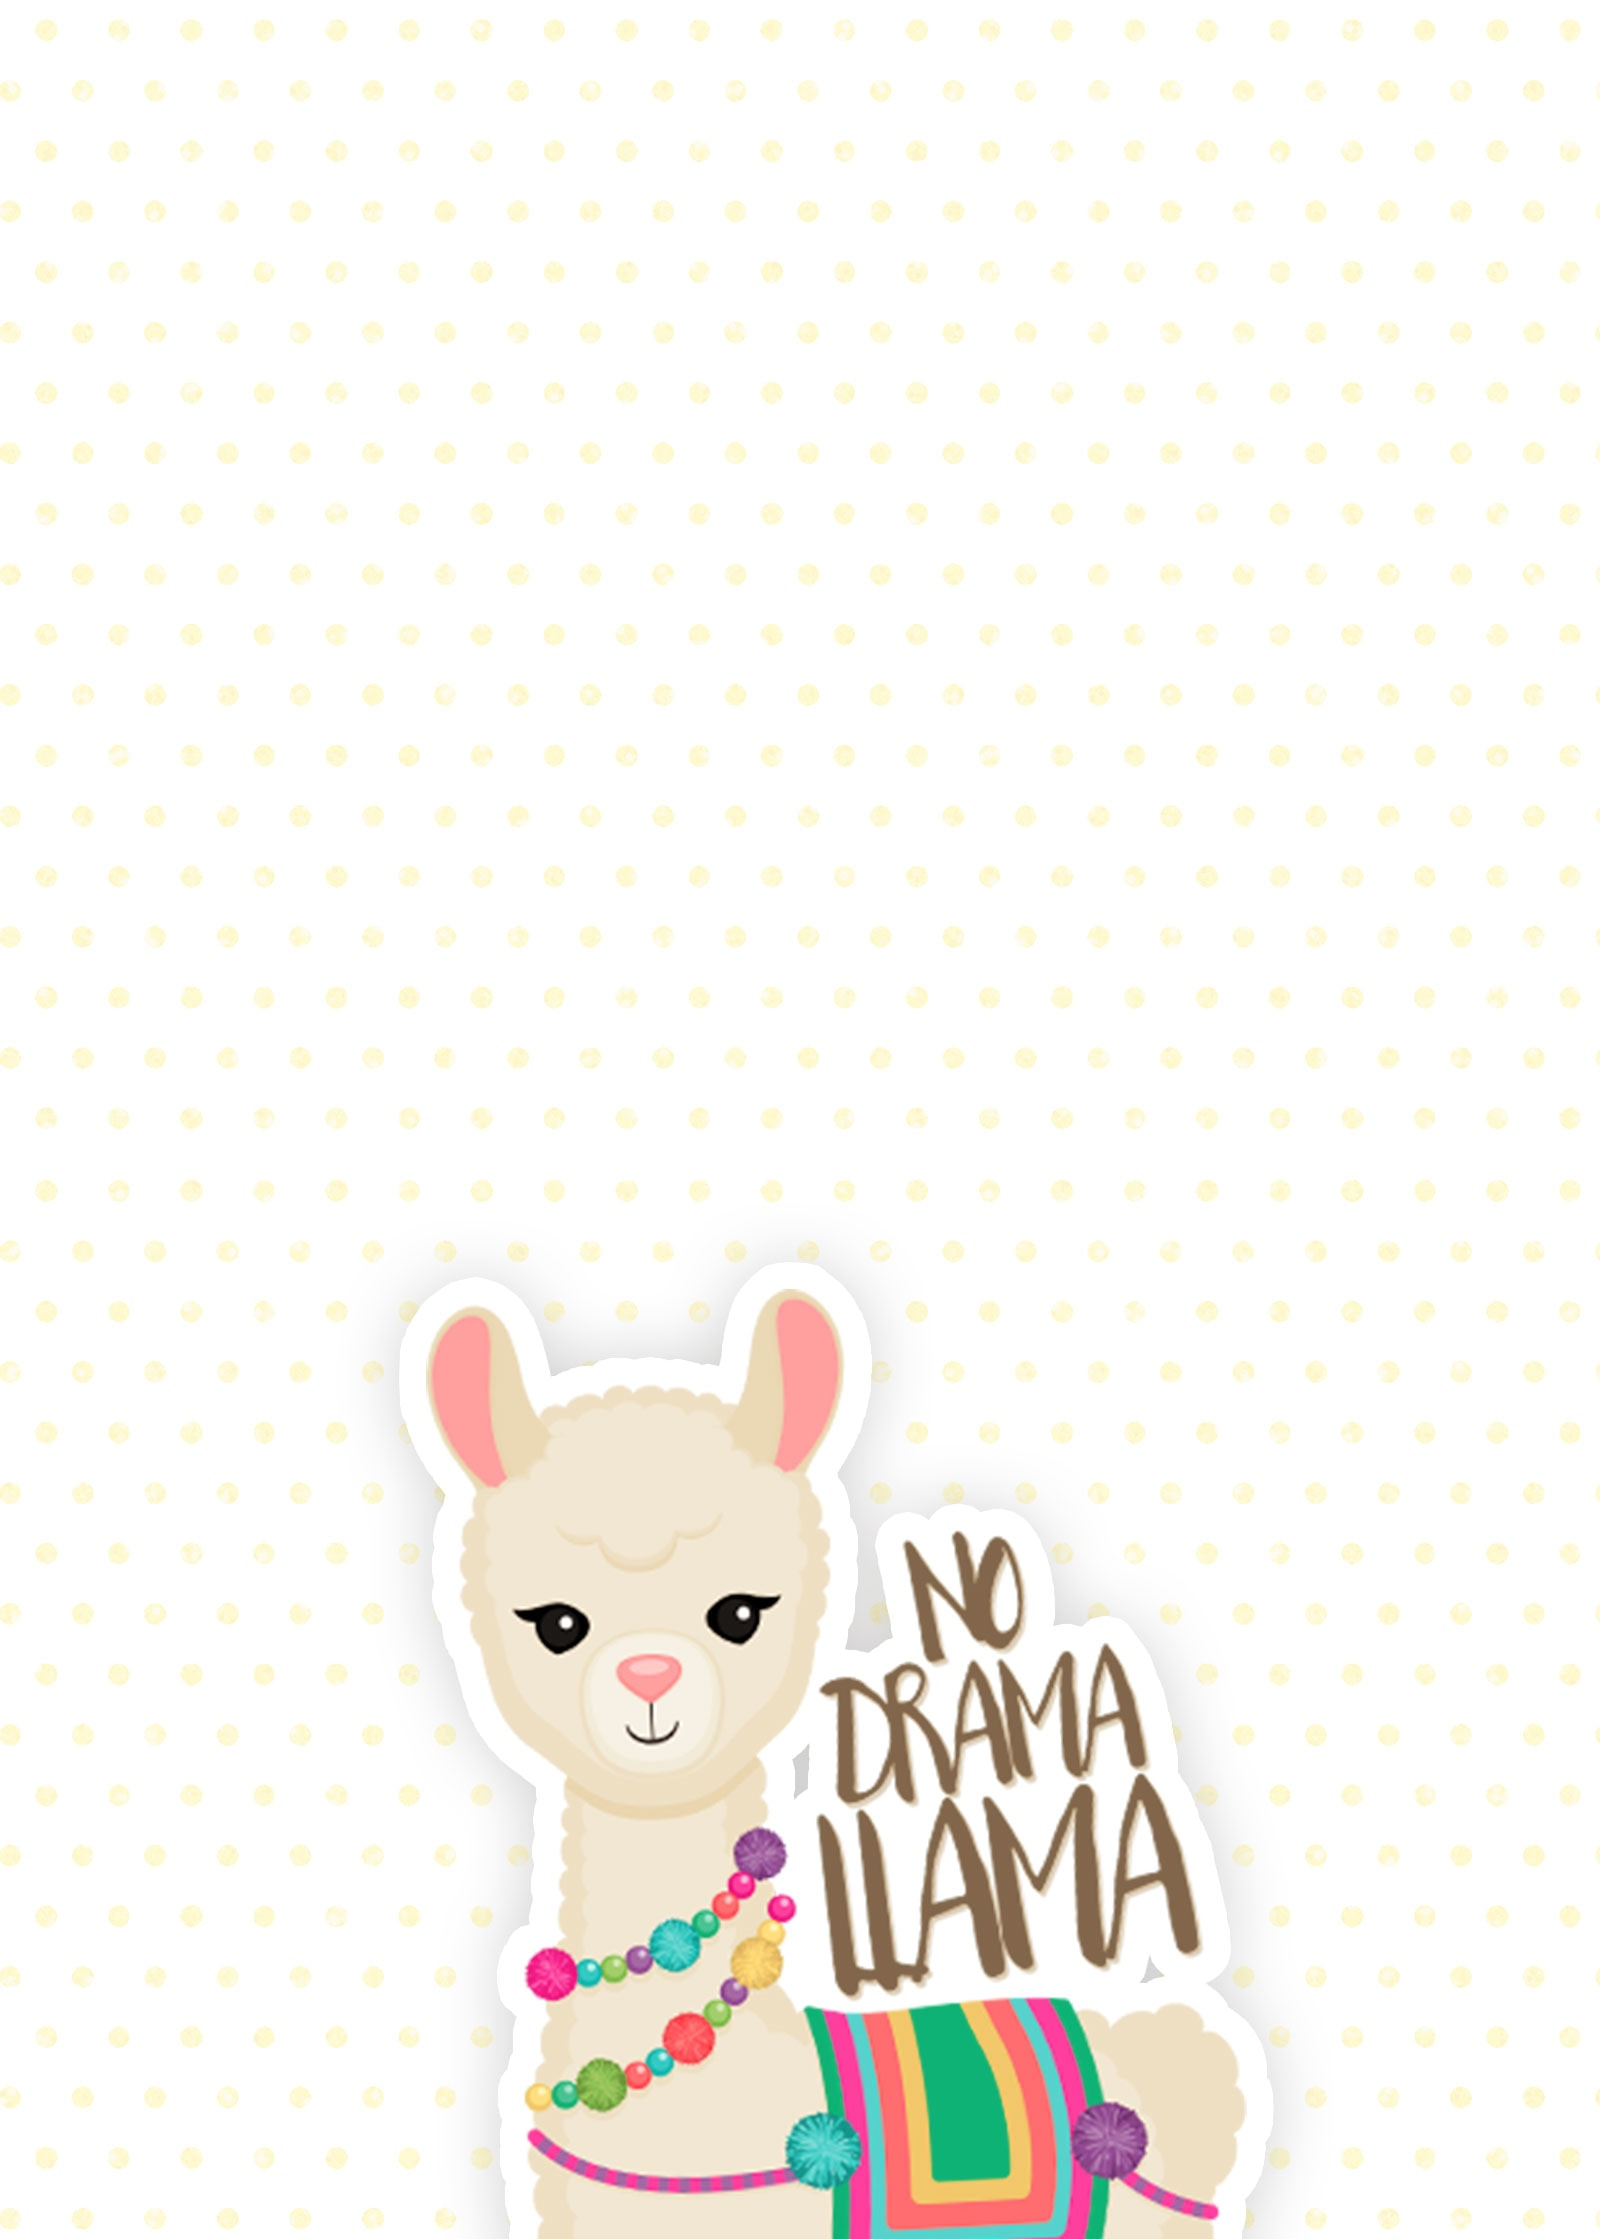 iPhone Background: No Drama Llama